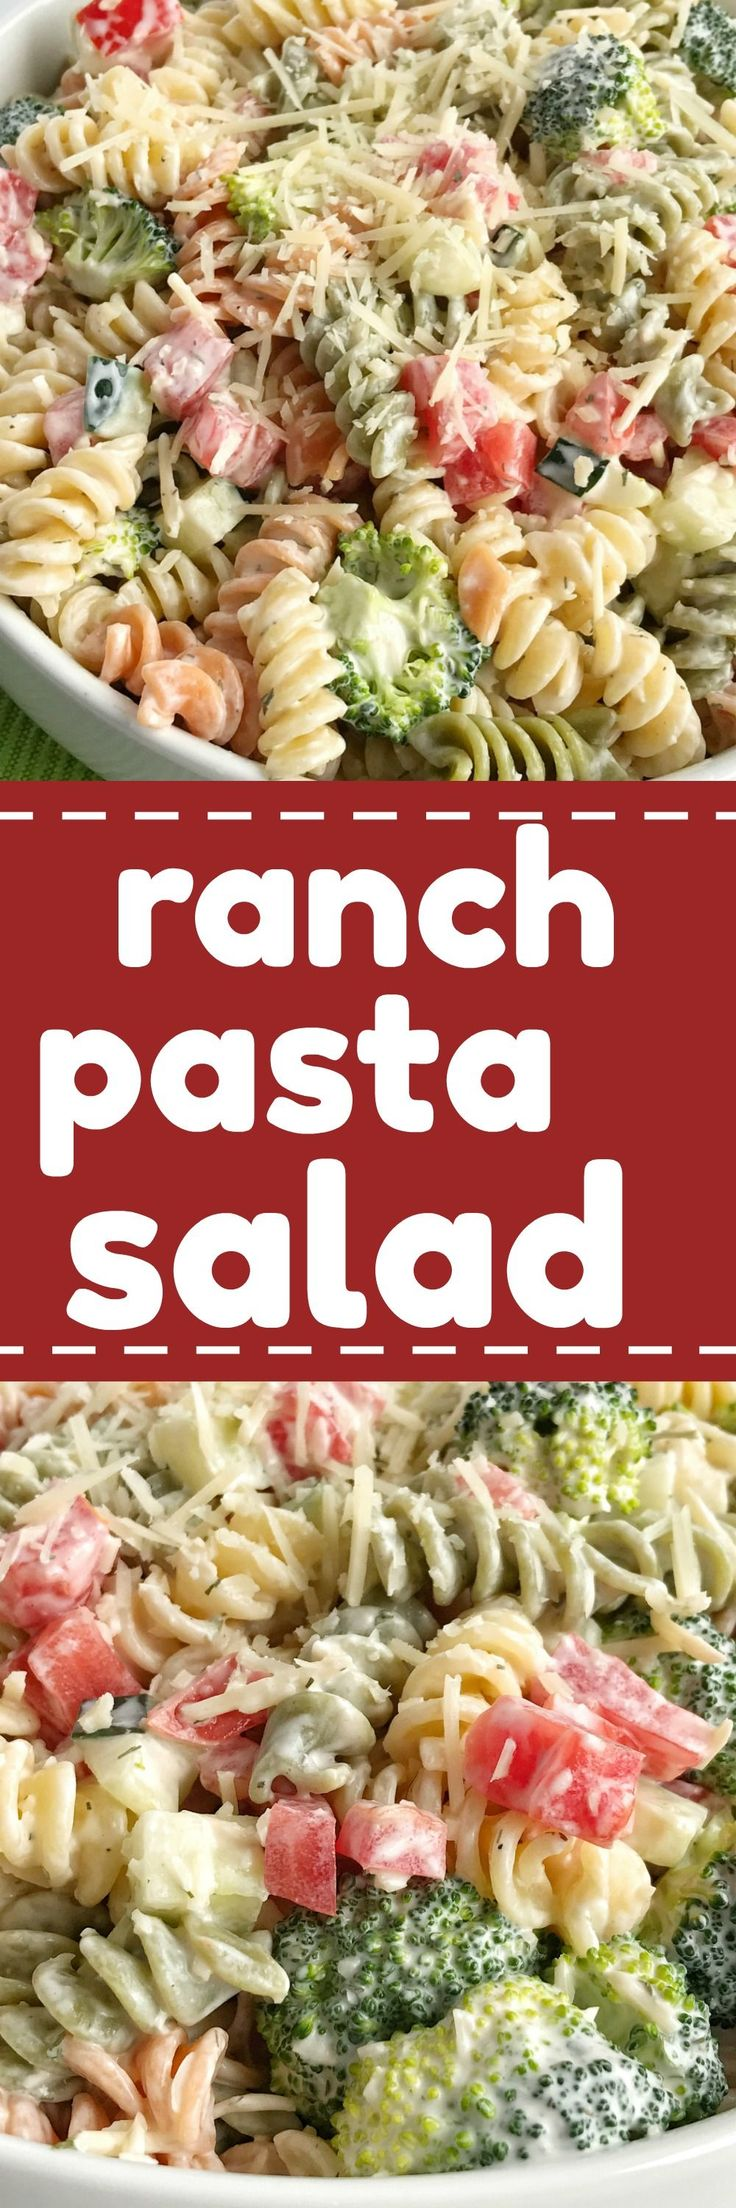 Ranch pasta salad is an easy and delicious side dish for summer picnics and bbq's. Only 6 ingredients and minutes to prepare. Tender pasta, cucumber, broccoli, tomatoes, and parmesan cheese covered in ranch dressing. So simple! #Recipes